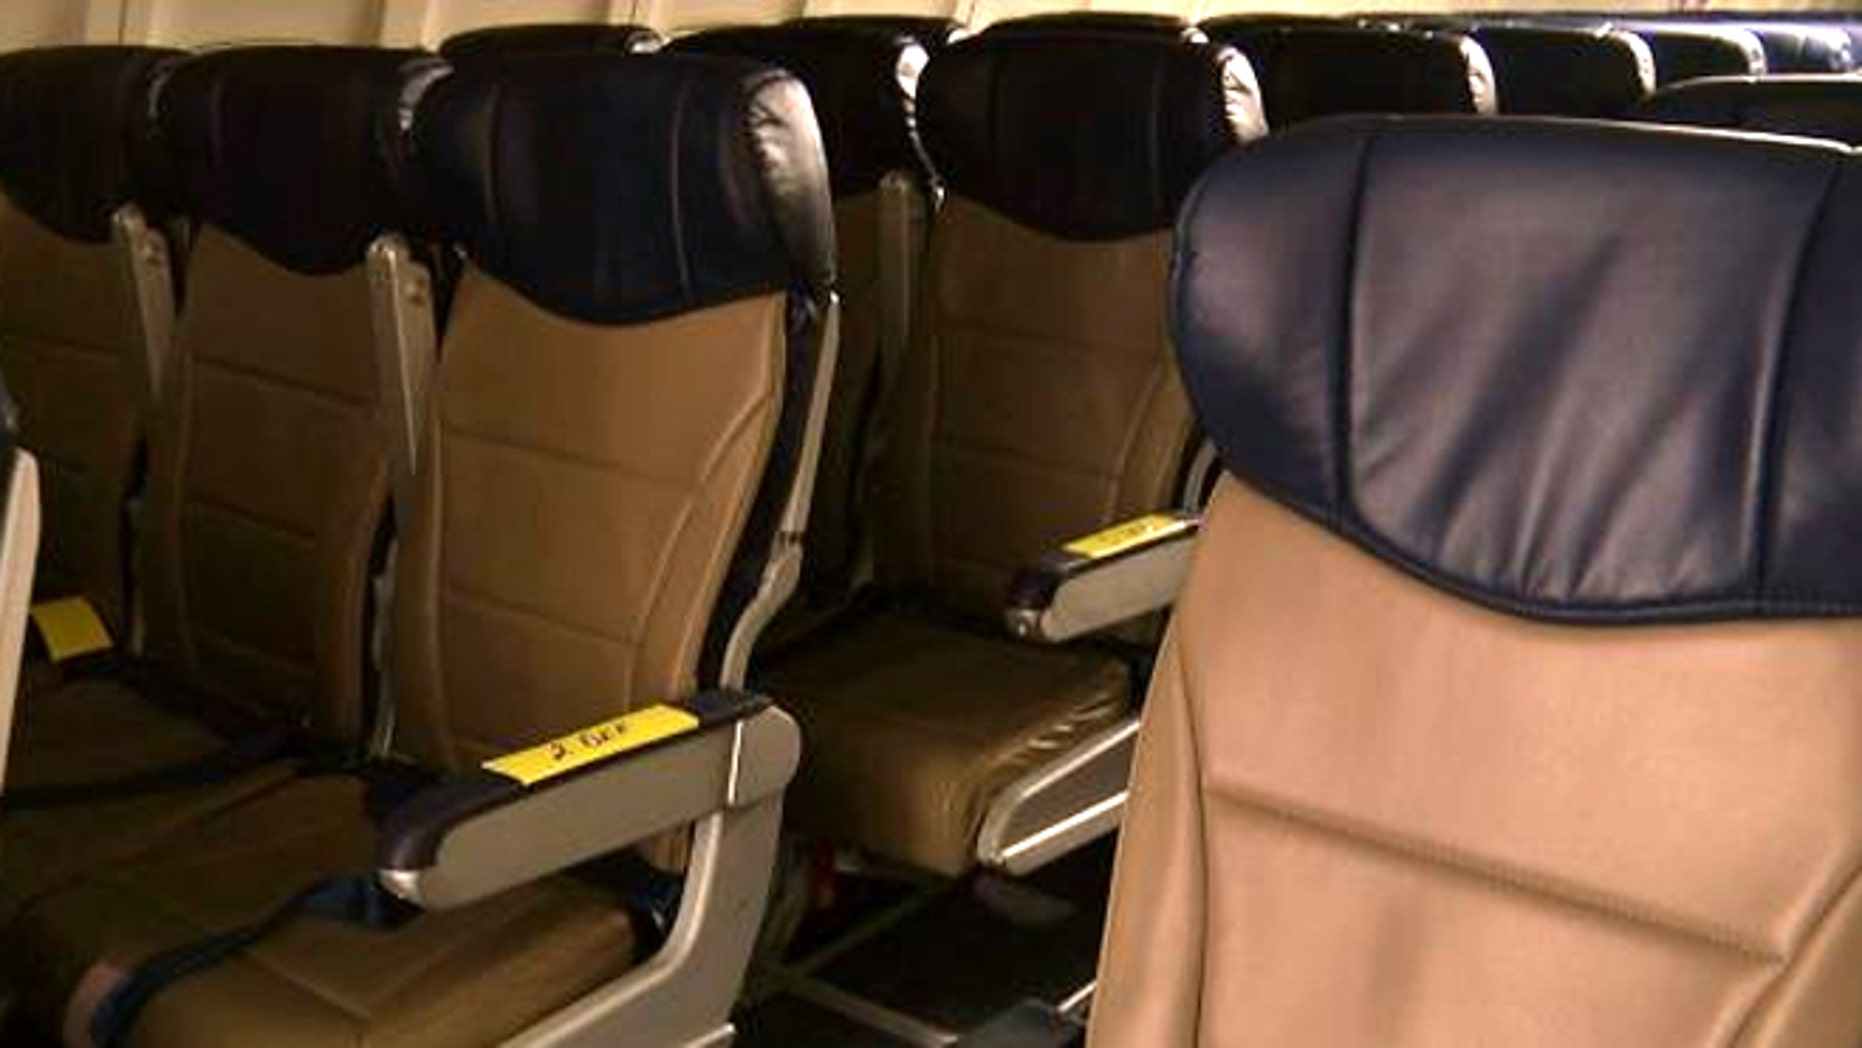 Sept. 23, 2013: Rows of slimline seats await installation onboard a Southwest Airlines 737 at the carrier's headquarters in Dallas.